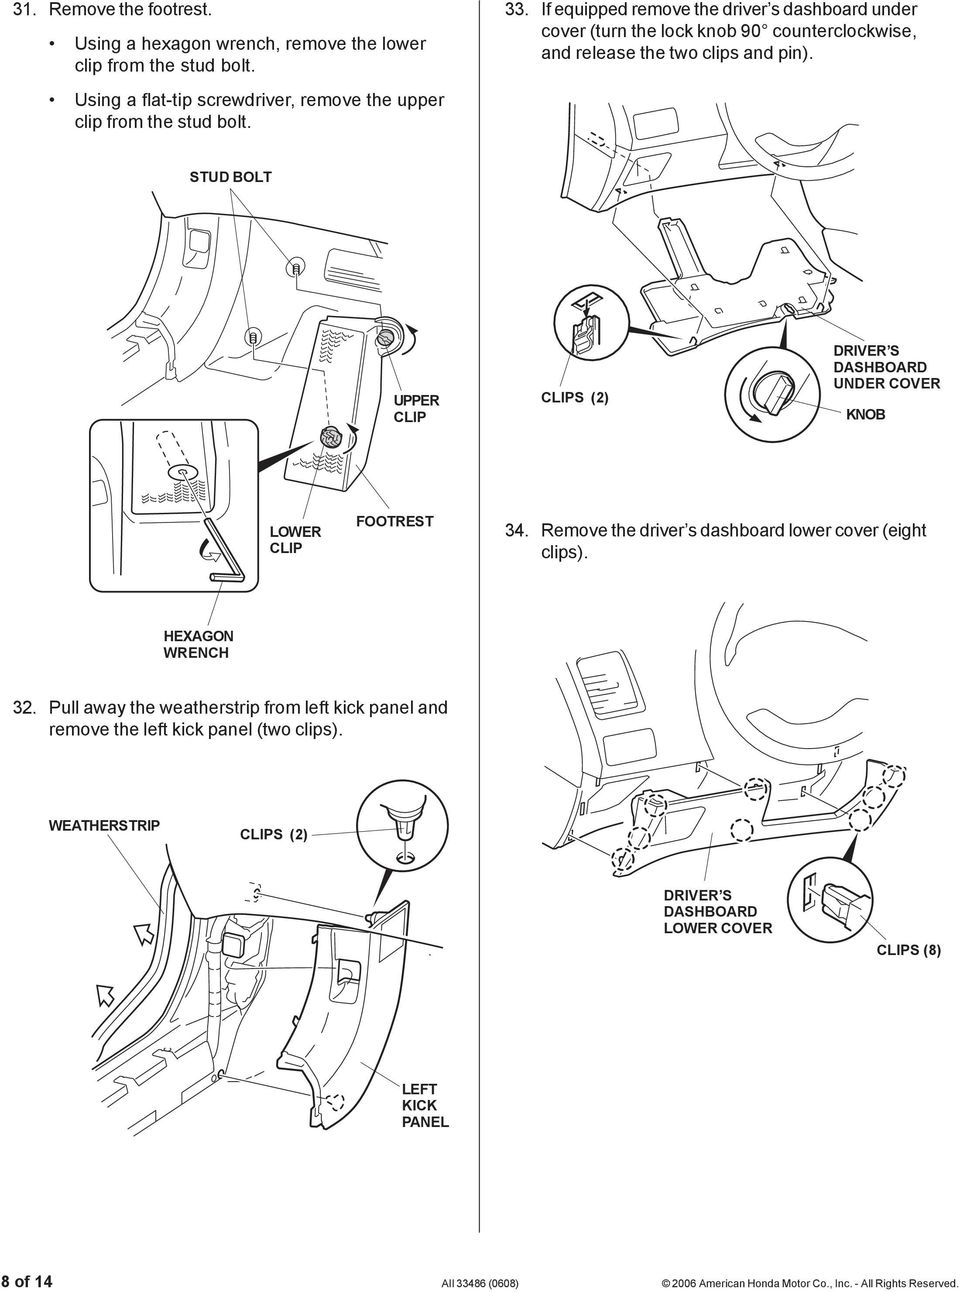 Installation Instructions Pdf Rib Harness Clip Wiring Stud Bolt Upper Clips 2 Driver S Dashboard Under Cover Knob 5202112t Lower